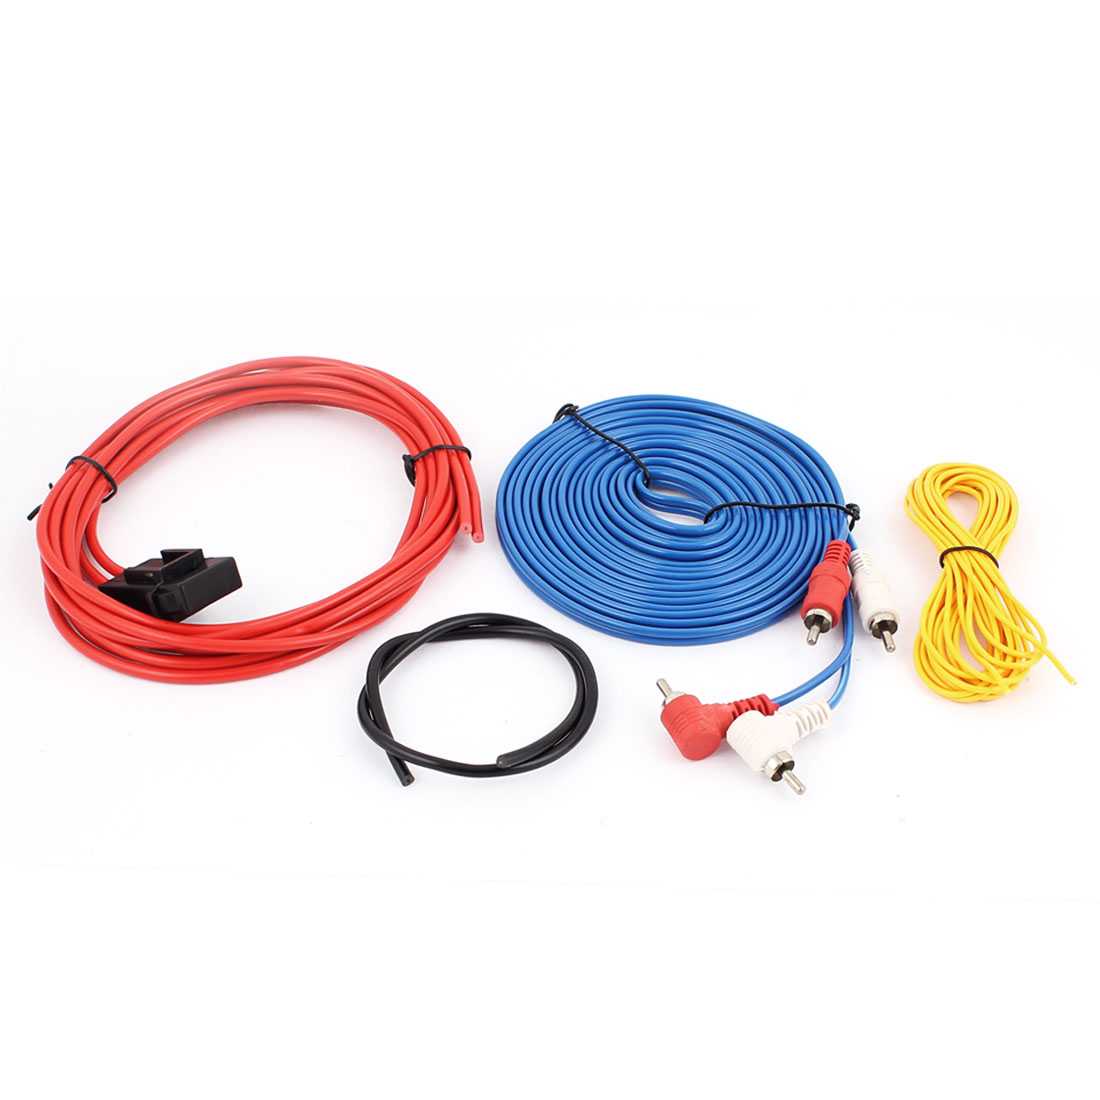 4 in 1 Car Audio Speaker Amplifier Wiring Cable Wire Kit